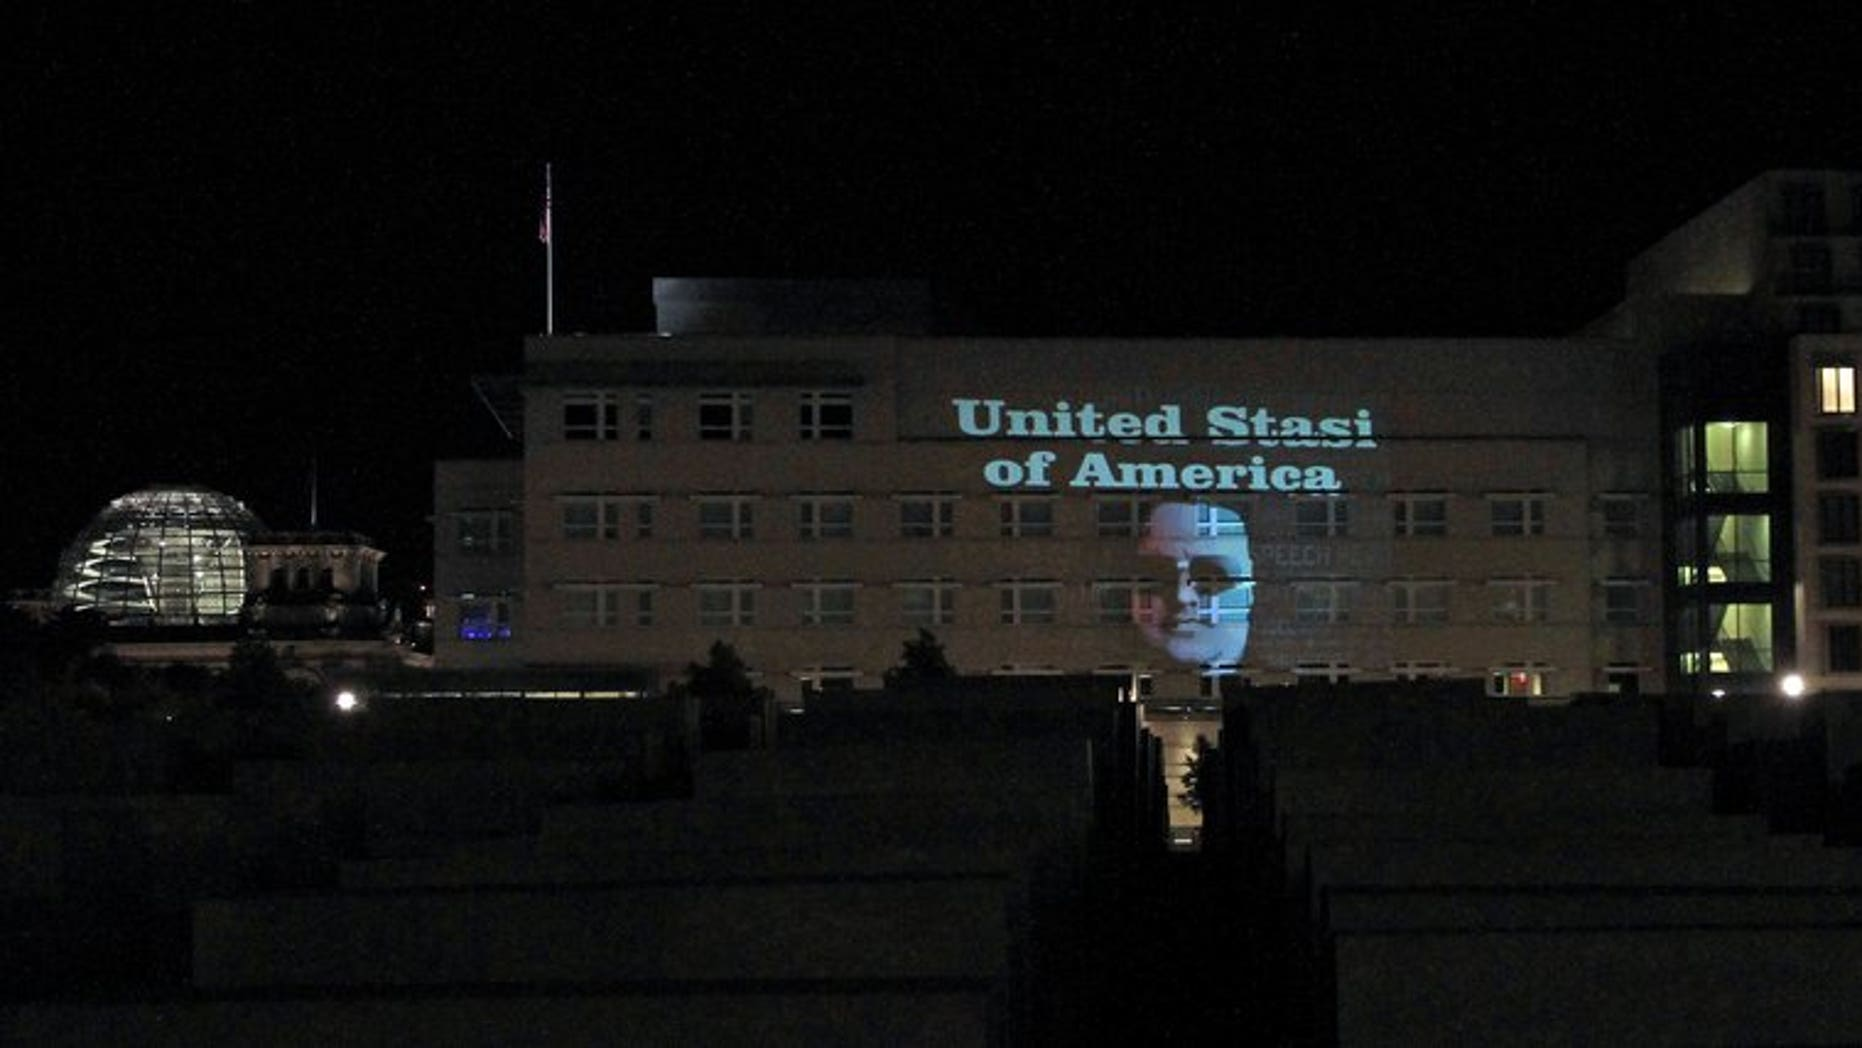 """The message """"United Stasi of America"""" and the face of Megaupload founder Kim Dotcom are displayed on the facade of the US embassy in Berlin on the night of July 8, 2013. The reference to the former communist Staatssicherheit or Stasi police was beamed at night onto the US mission by German artist Oliver Bienkowski, in collaboration with Internet tycoon and online activist Kim Dotcom."""